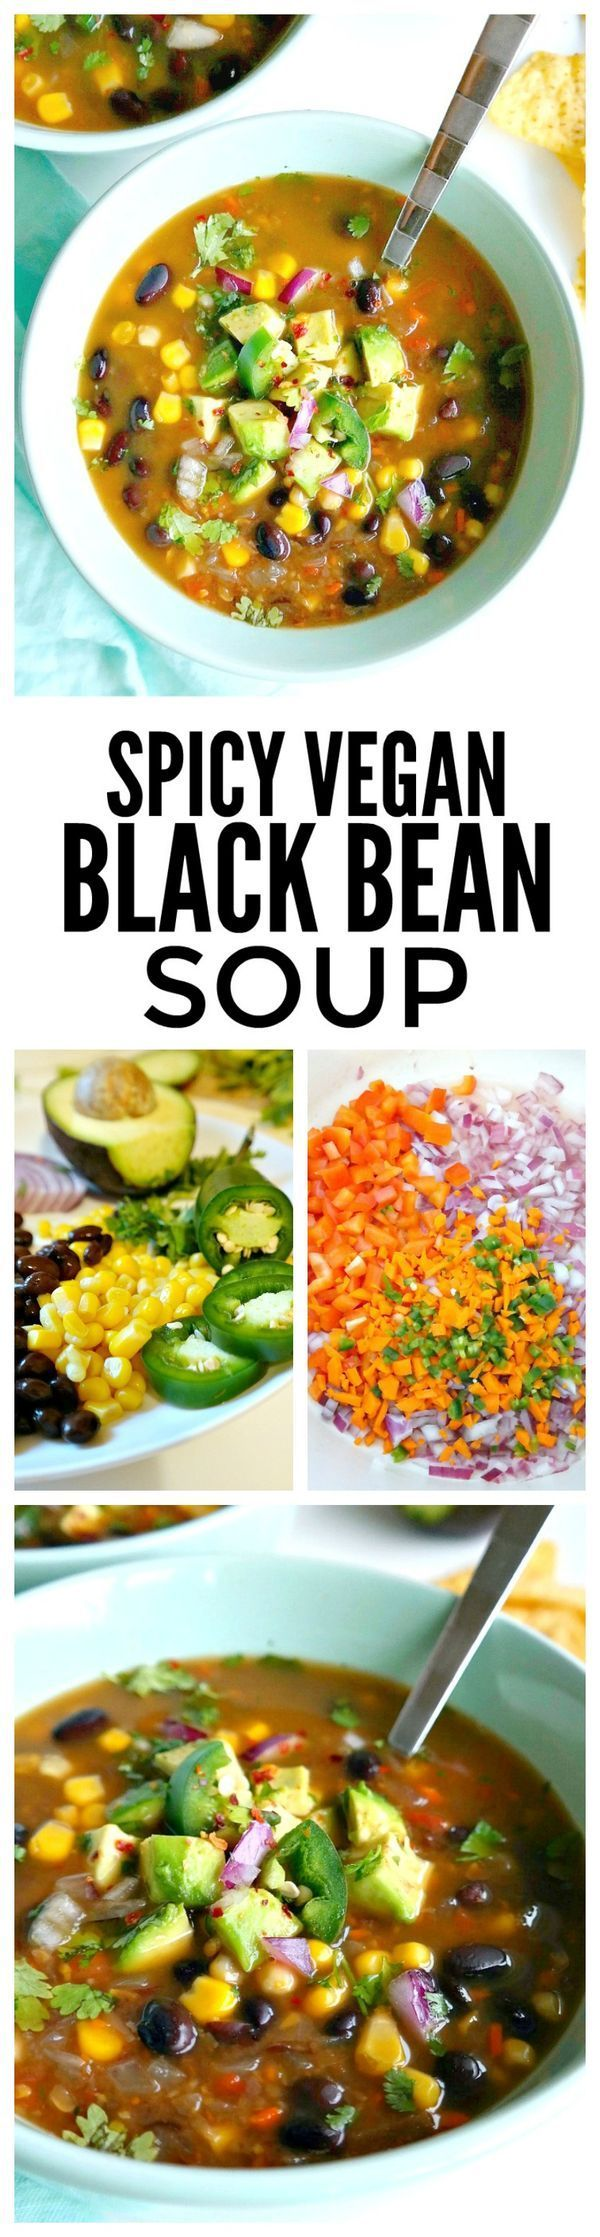 This Spicy Vegan Black Bean Soup recipe is healthy, delicious, simple, packed with extra veggie goodness & ready in under 1 hour. A perfect dinner for those chilly nights this fall and winter!